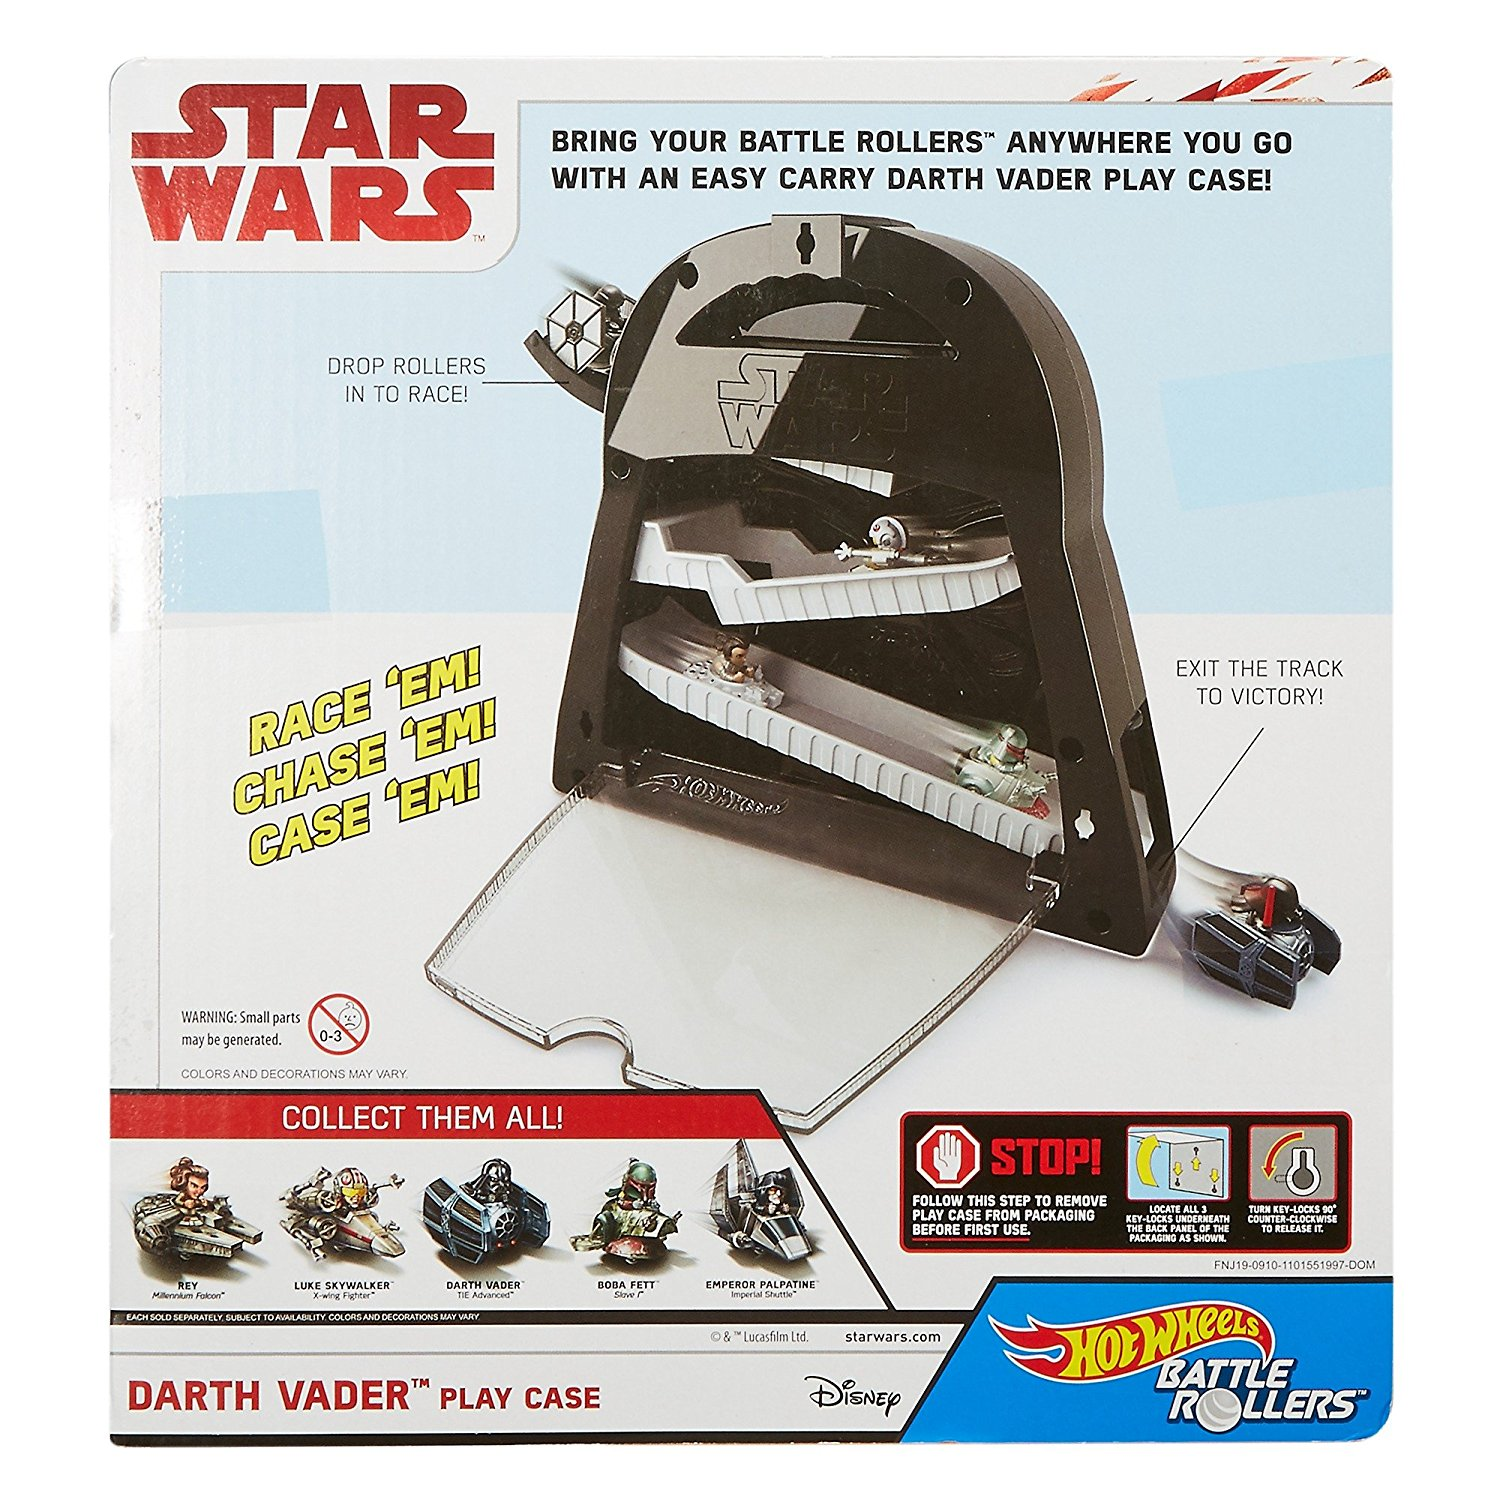 TLJ HW Battle Rollers Darth Vader Play Case Set 2